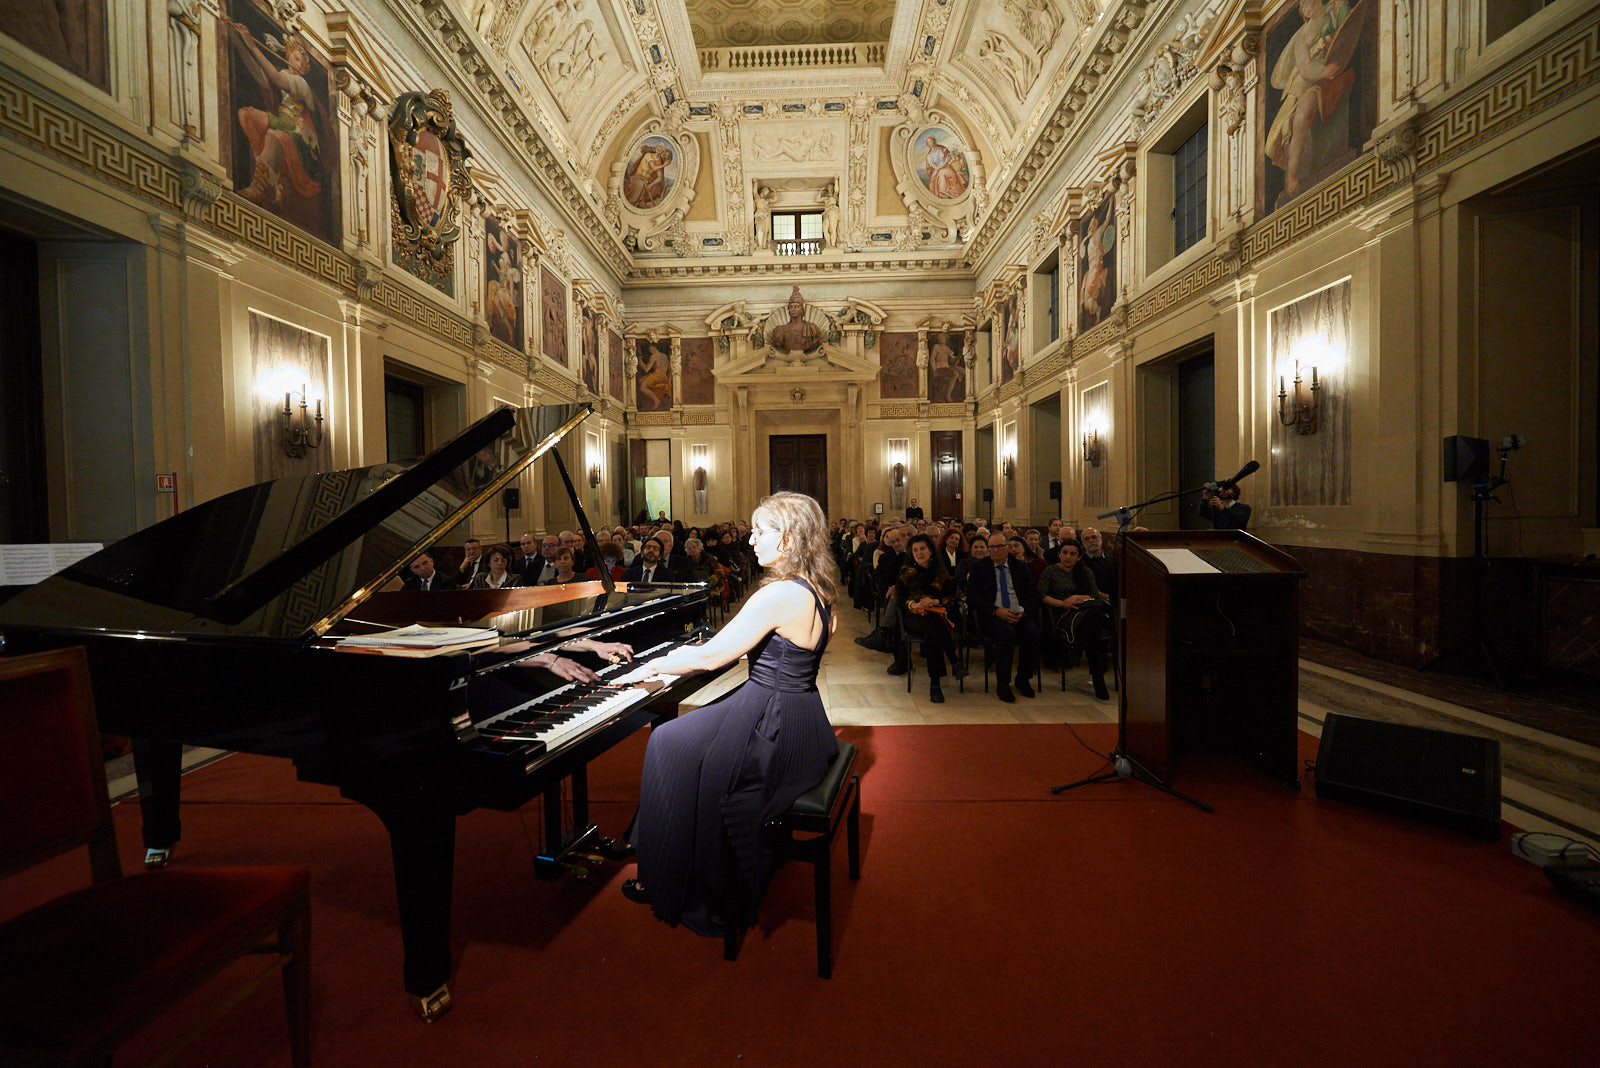 the concert at Palazzo Marino dedicated to the Righteous. In the picture, the pianist Ani Martirosyan